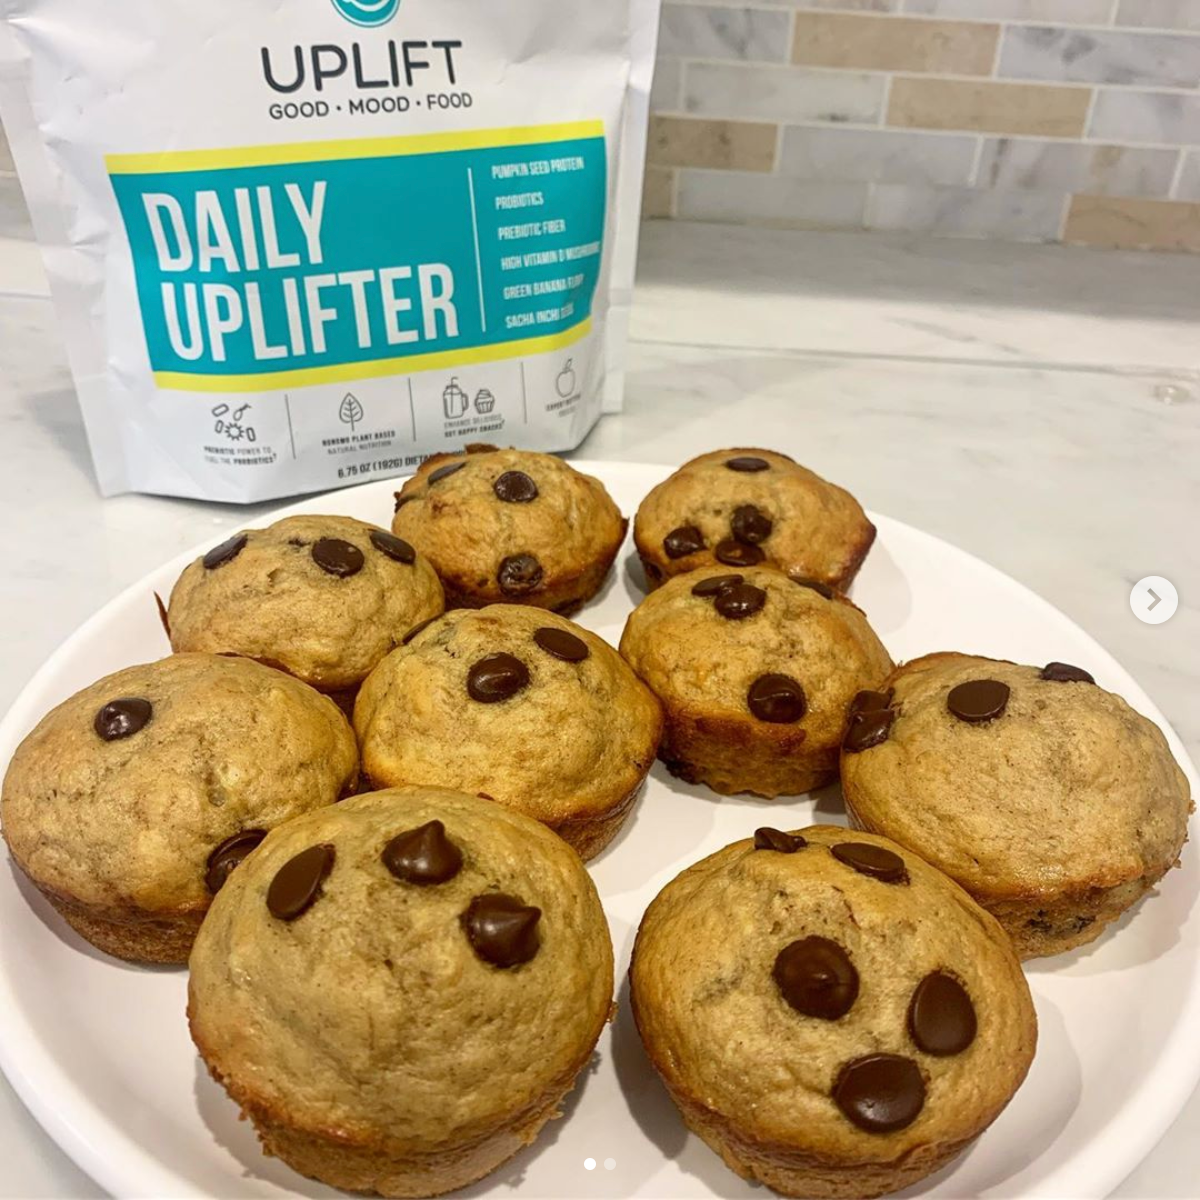 gut happy cookies functional snacks high fiber snacks prebiotic dietician prebiotic fiber prebiotic supplement powder daily uplifter